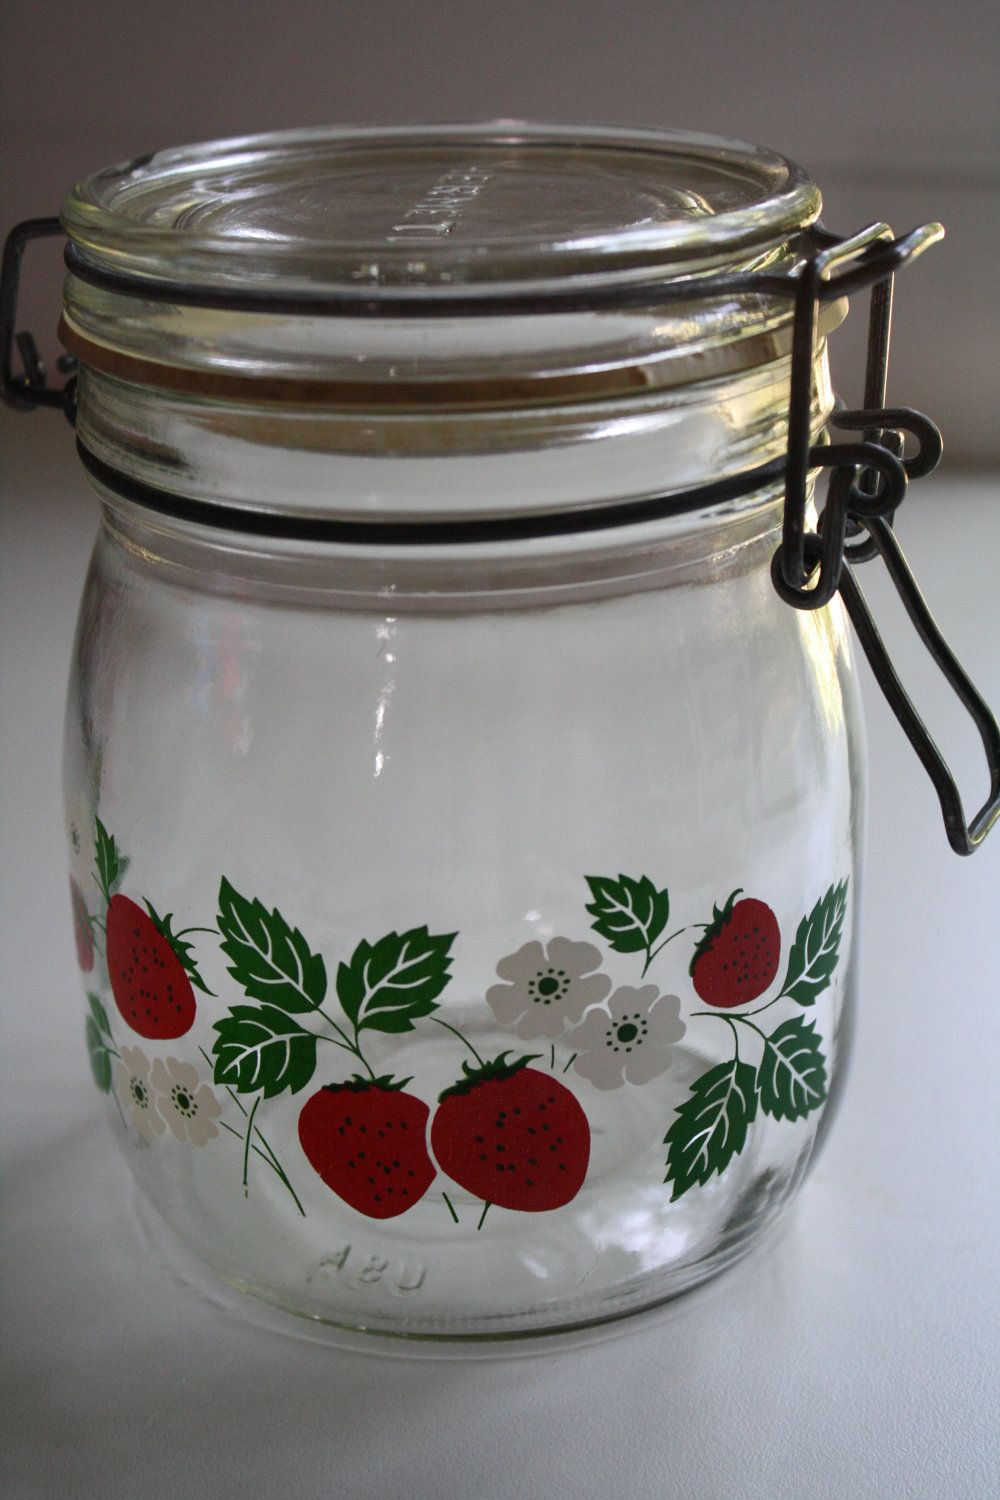 made in cold porcelain Jar decorated with Strawberry